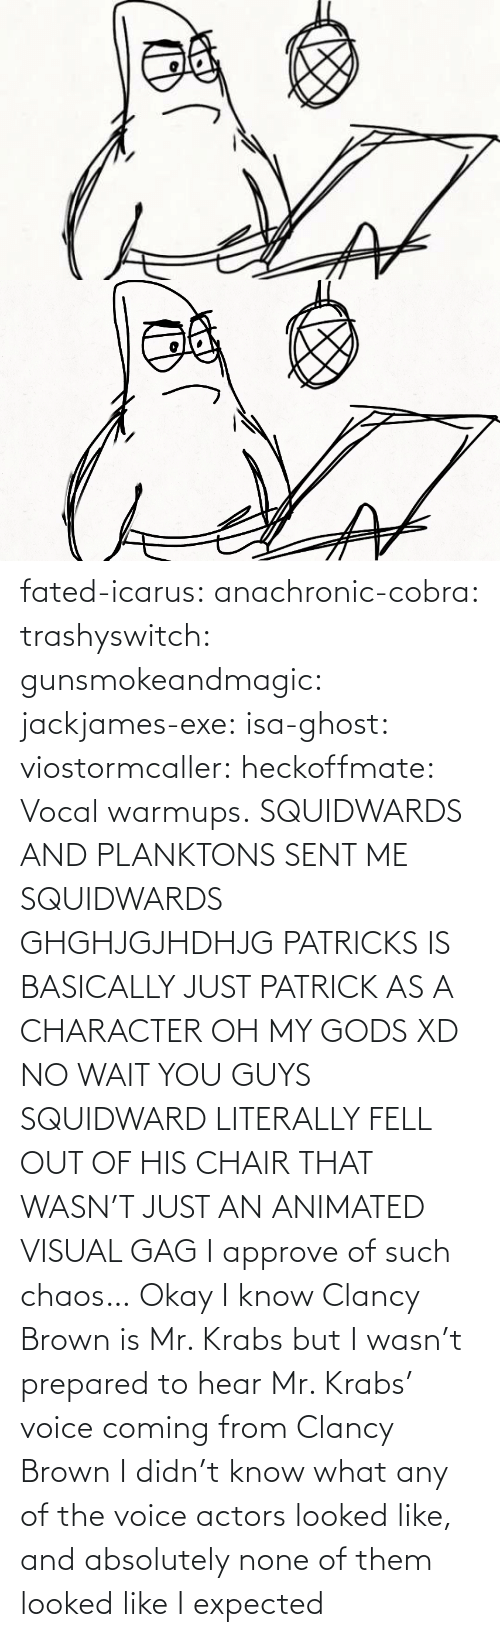 the voice: fated-icarus:  anachronic-cobra: trashyswitch:  gunsmokeandmagic:  jackjames-exe:  isa-ghost:   viostormcaller:  heckoffmate: Vocal warmups. SQUIDWARDS AND PLANKTONS SENT ME  SQUIDWARDS GHGHJGJHDHJG   PATRICKS IS BASICALLY JUST PATRICK AS A CHARACTER OH MY GODS XD   NO WAIT YOU GUYS SQUIDWARD LITERALLY FELL OUT OF HIS CHAIR THAT WASN'T JUST AN ANIMATED VISUAL GAG    I approve of such chaos…    Okay I know Clancy Brown is Mr. Krabs but I wasn't prepared to hear Mr. Krabs' voice coming from Clancy Brown    I didn't know what any of the voice actors looked like, and absolutely none of them looked like I expected